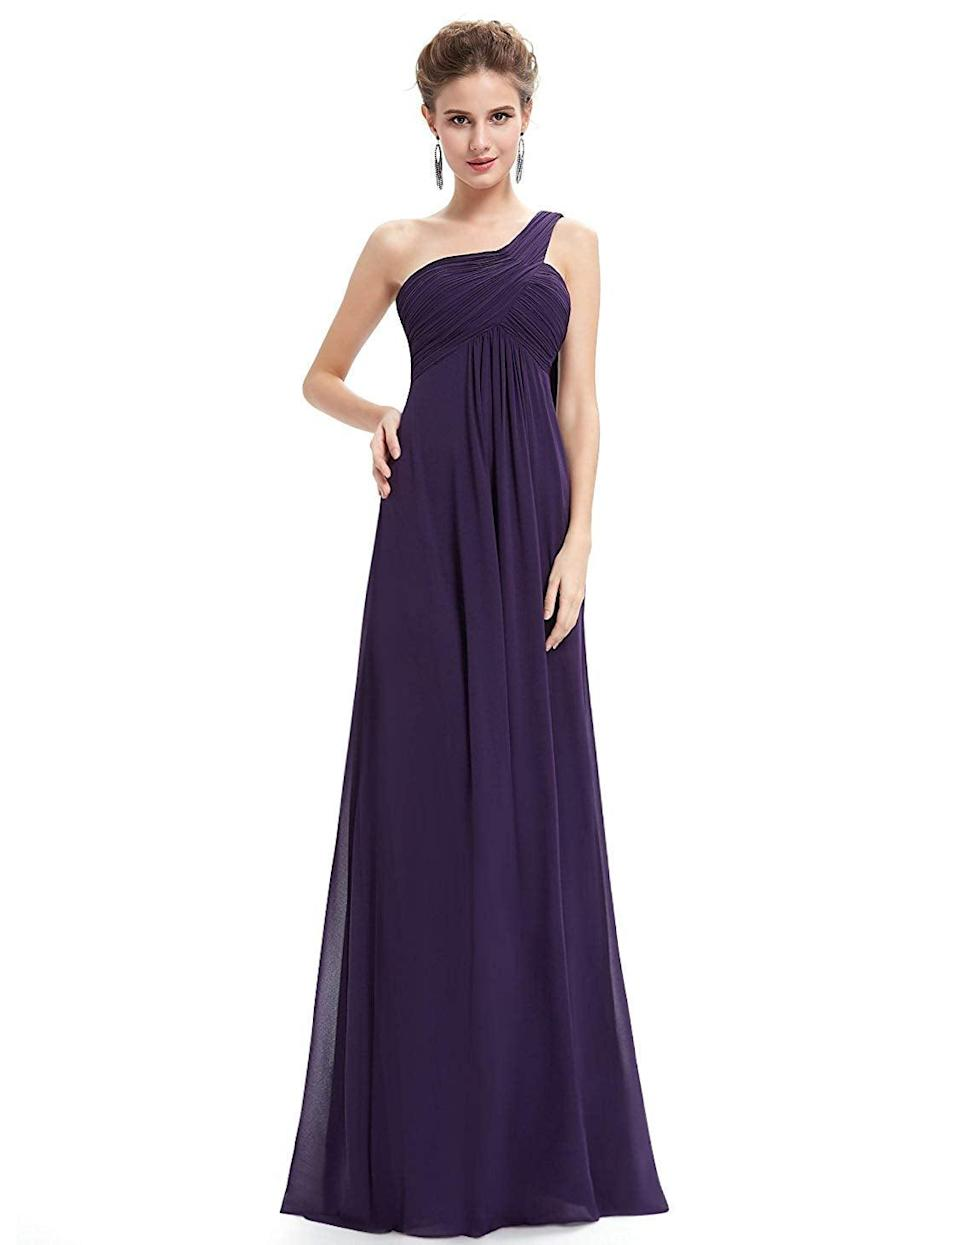 """<h3><a href=""""https://amzn.to/2vHFJZC"""" rel=""""nofollow noopener"""" target=""""_blank"""" data-ylk=""""slk:One-Shoulder Gown"""" class=""""link rapid-noclick-resp"""">One-Shoulder Gown</a></h3><br><strong>Arianna </strong><br><br><strong>How She Discovered It:</strong> """"I was going to a black-tie wedding and didn't want to spend a lot of money on a dress, and I had an Amazon gift card so...I googled formal dresses on Amazon and found one with rave reviews. A lot of girls mentioned using it as a bridesmaid dress!""""<br><br><strong>Why It's A Hidden Gem:</strong> """"I only paid $50 for it, I got a lot of compliments on it, AND have turned multiple people onto the same dress — so a lot of my friends own it as well.""""<br><br><strong>Ever Pretty</strong> One-Shoulder Evening Dress, $, available at <a href=""""https://amzn.to/2vHFJZC"""" rel=""""nofollow noopener"""" target=""""_blank"""" data-ylk=""""slk:Amazon"""" class=""""link rapid-noclick-resp"""">Amazon</a>"""